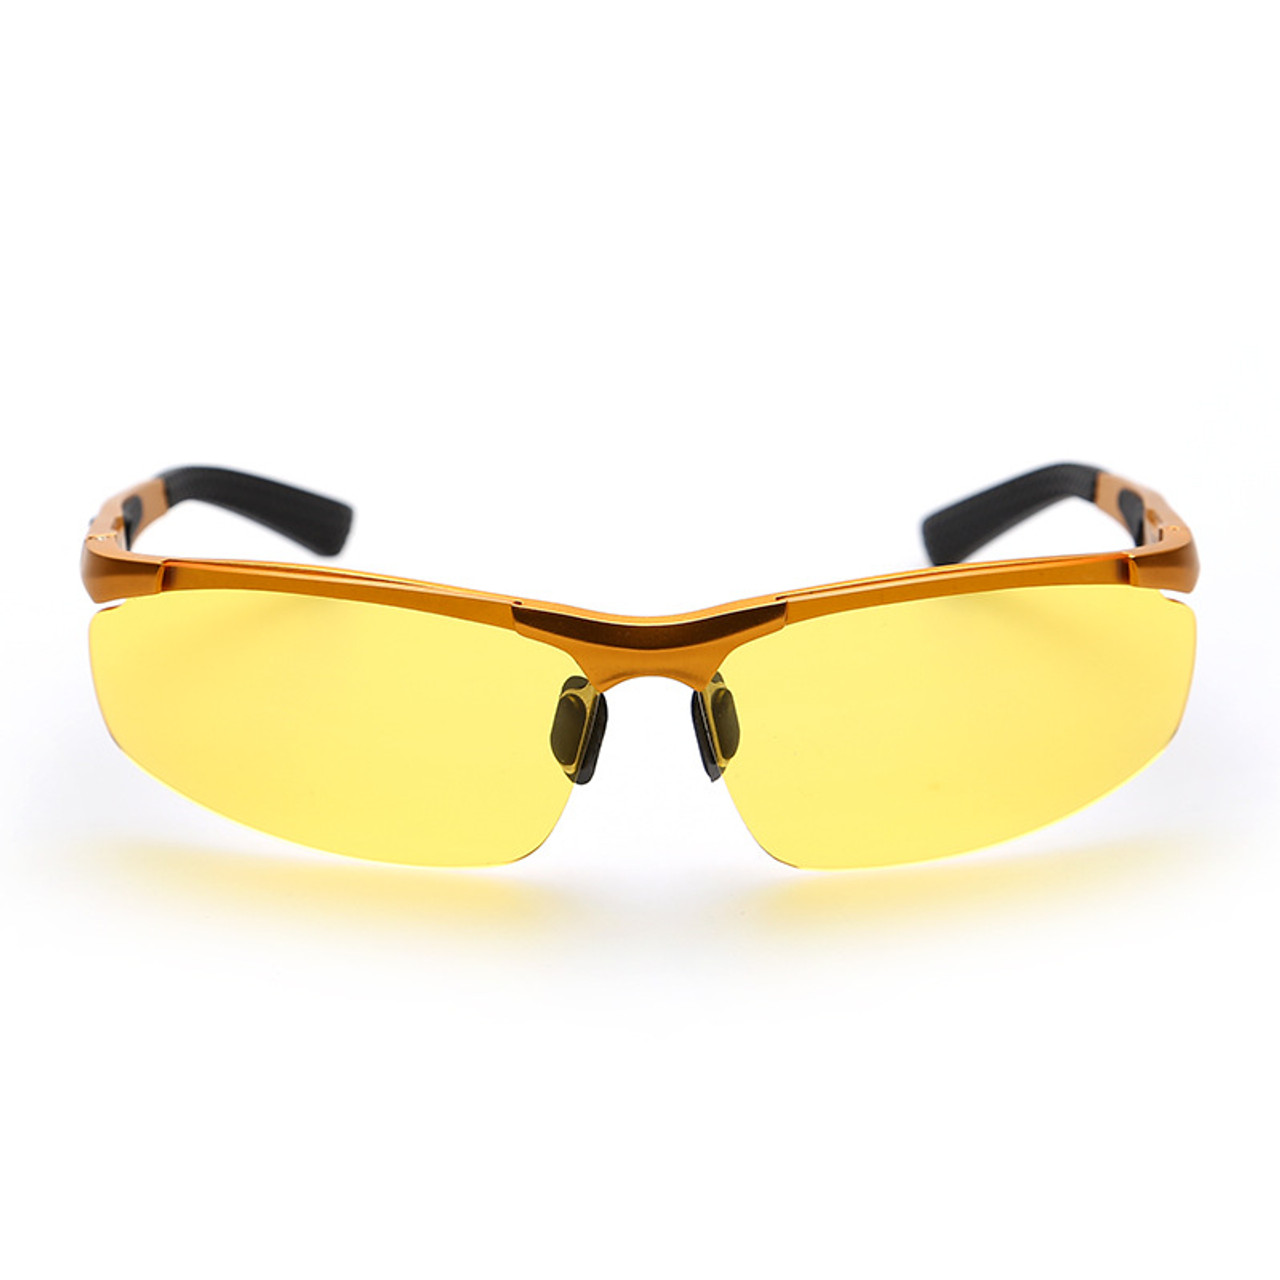 ca659371b0a ... Night Driving New HDCRAFTER Anti-Glare Goggles Eyeglasses Polarized  Driving Sunglasses Yellow Lens Night Vision ...